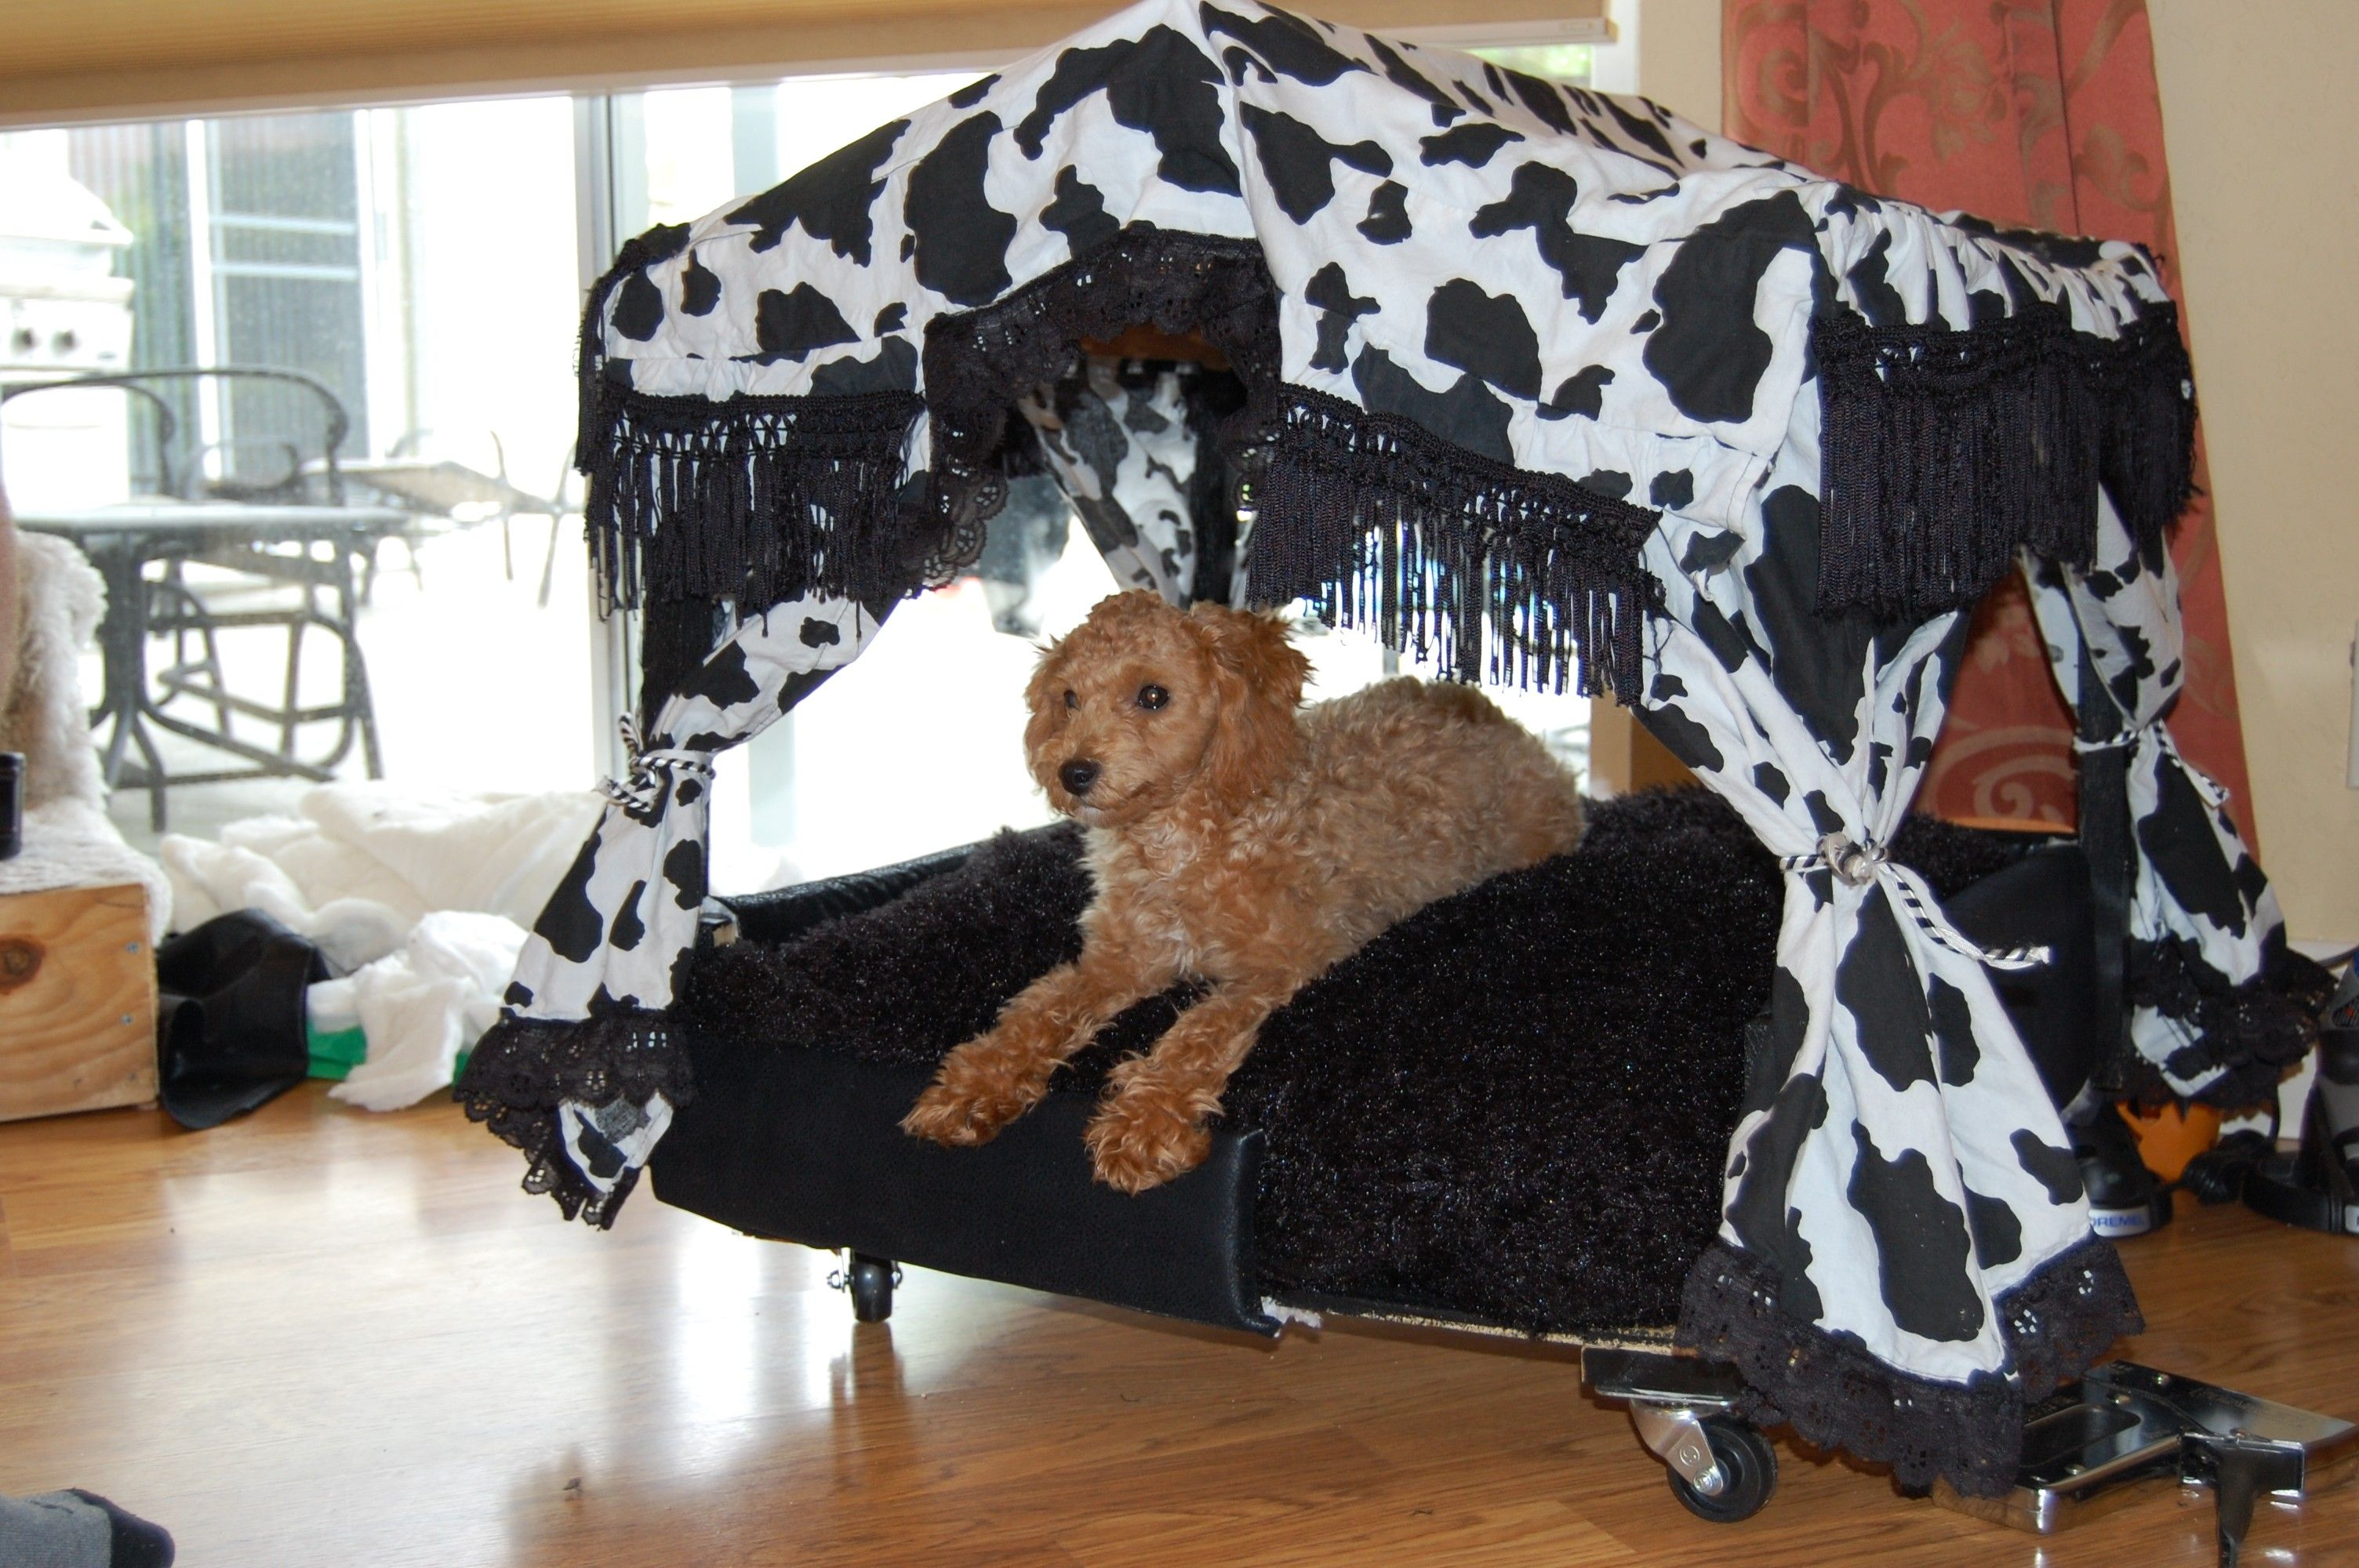 Dog Bed Fit For A King Do You Ever See Those Fancy Dog Beds And Then See The Price Well I Did And Said I Could Make That Well Fancy